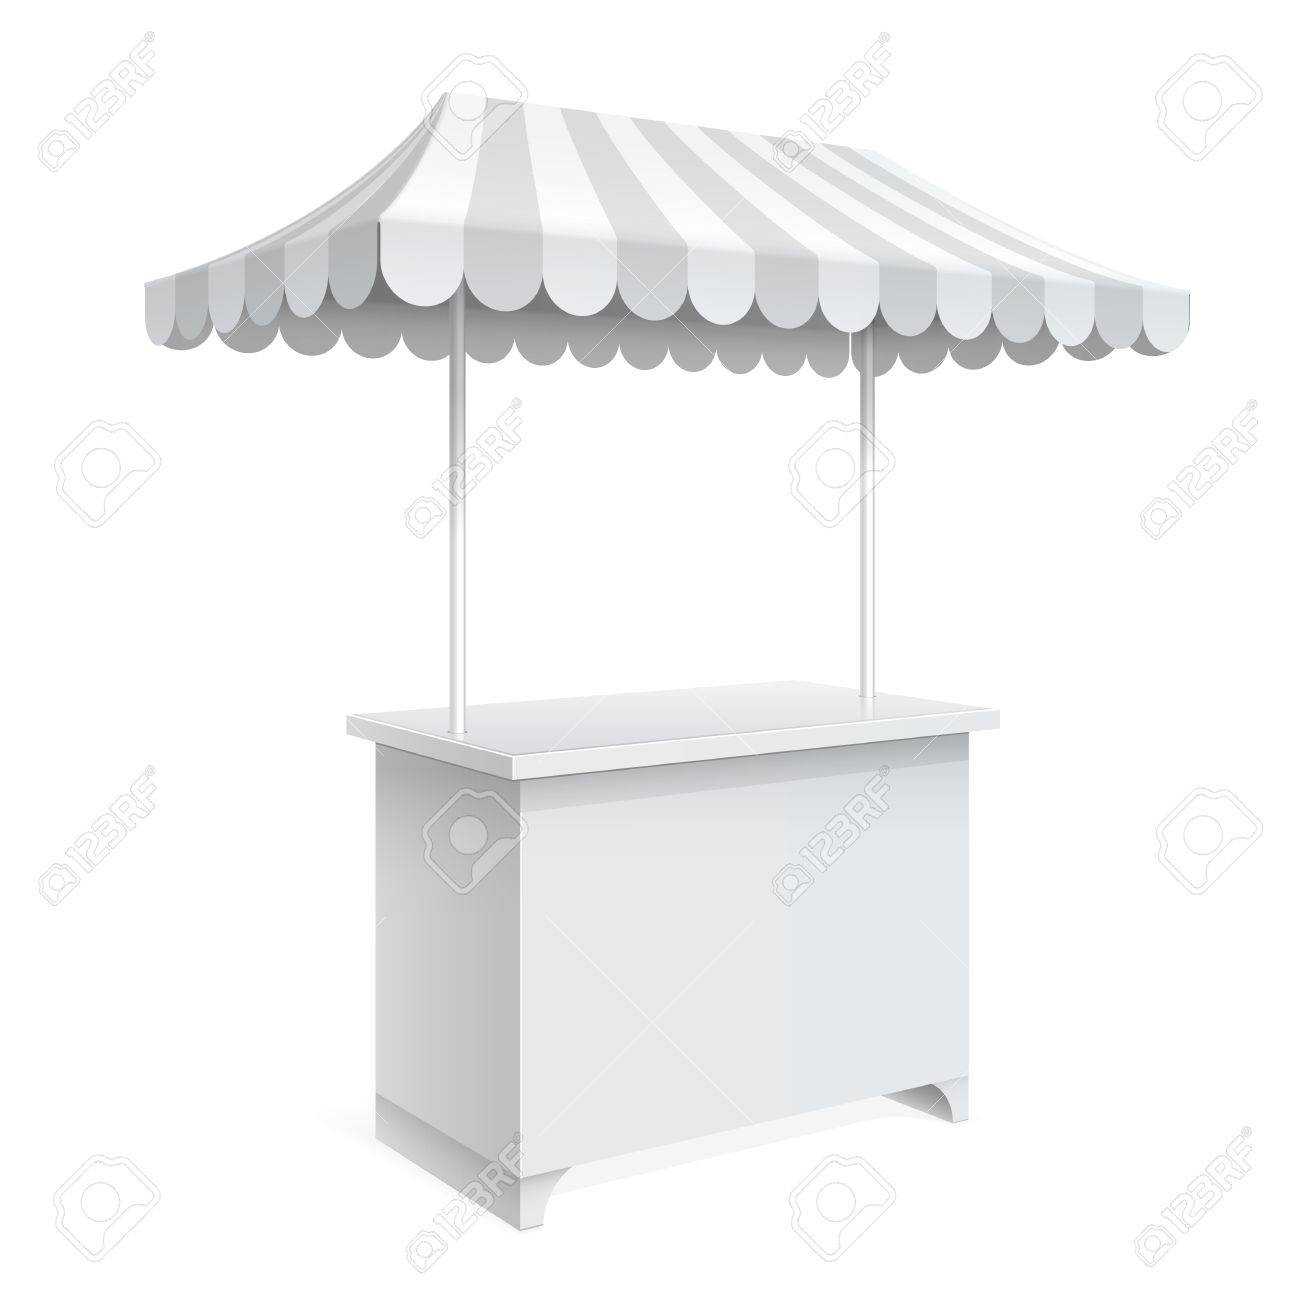 Promotion Counter On Wheels And A Triangular Roof Covered With Striped Awning Retail Trade Stand